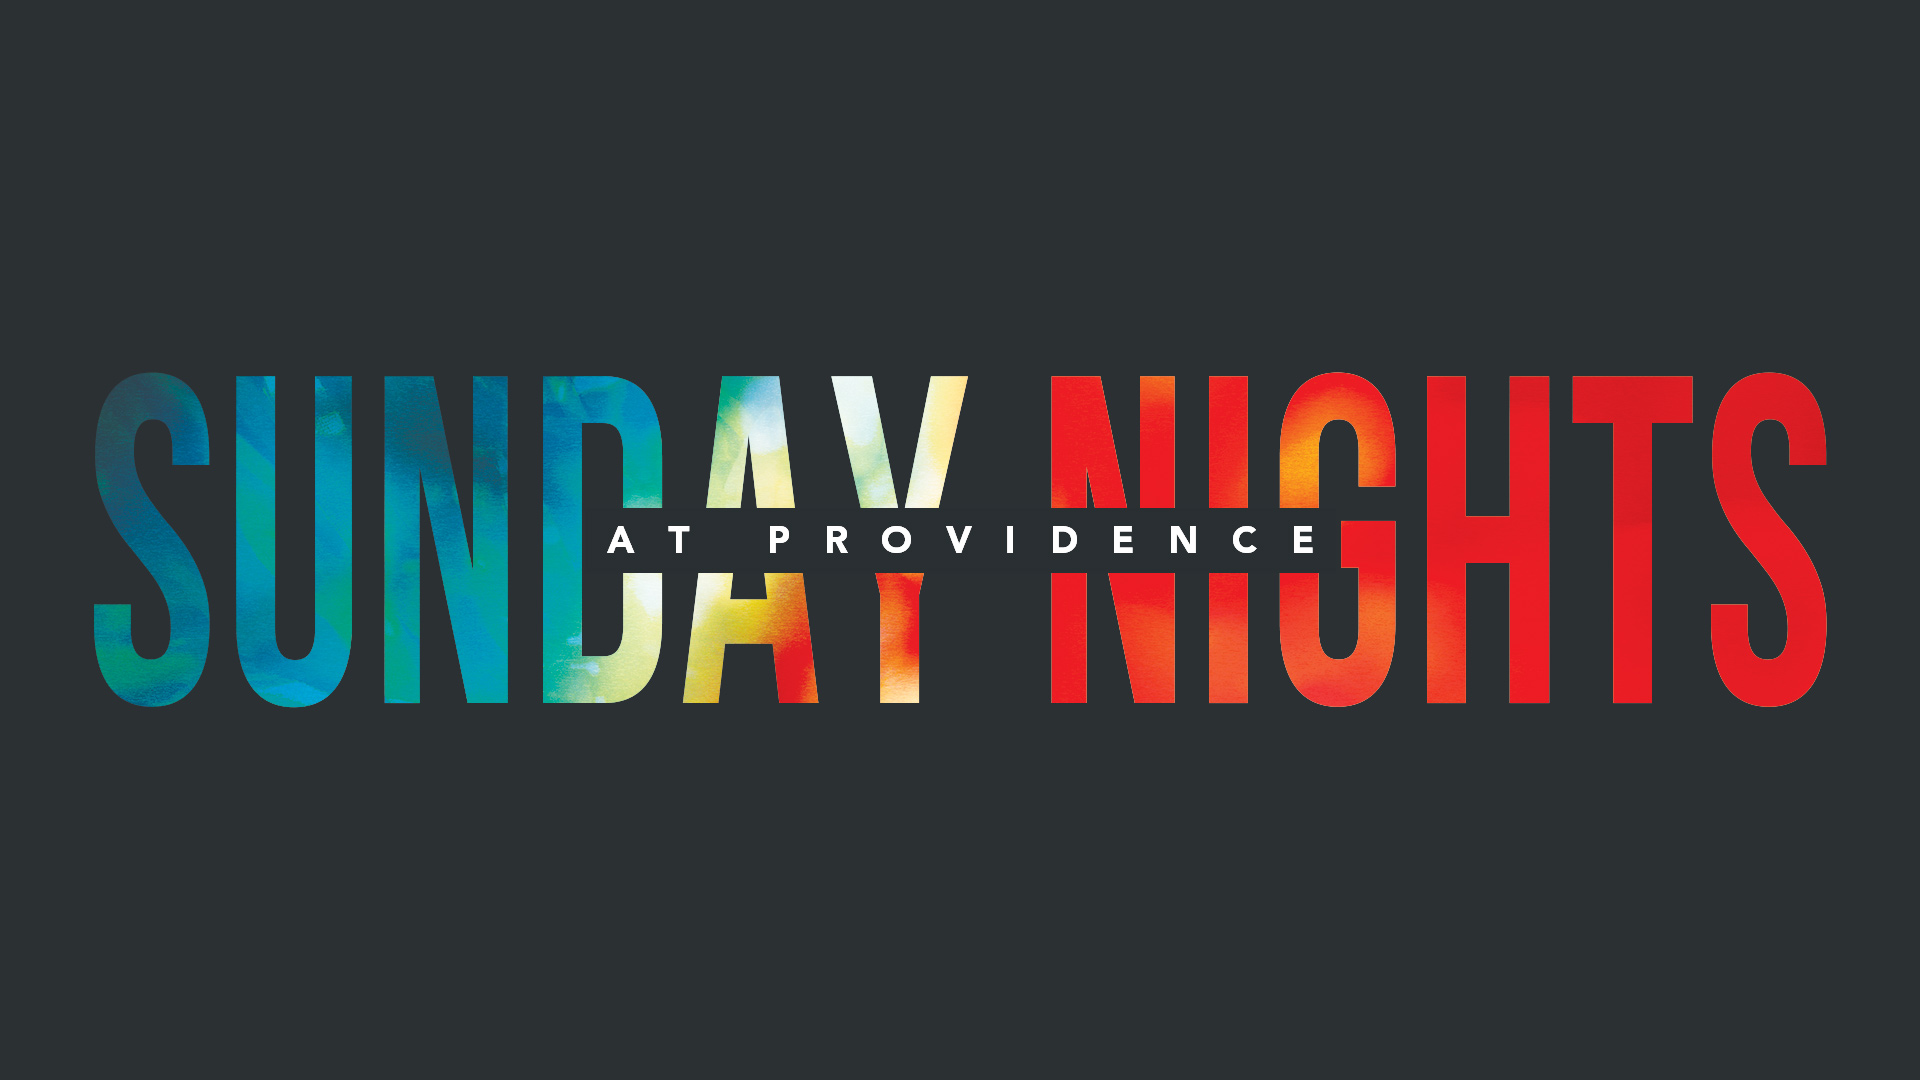 Sunday_Nights_at_Providence image